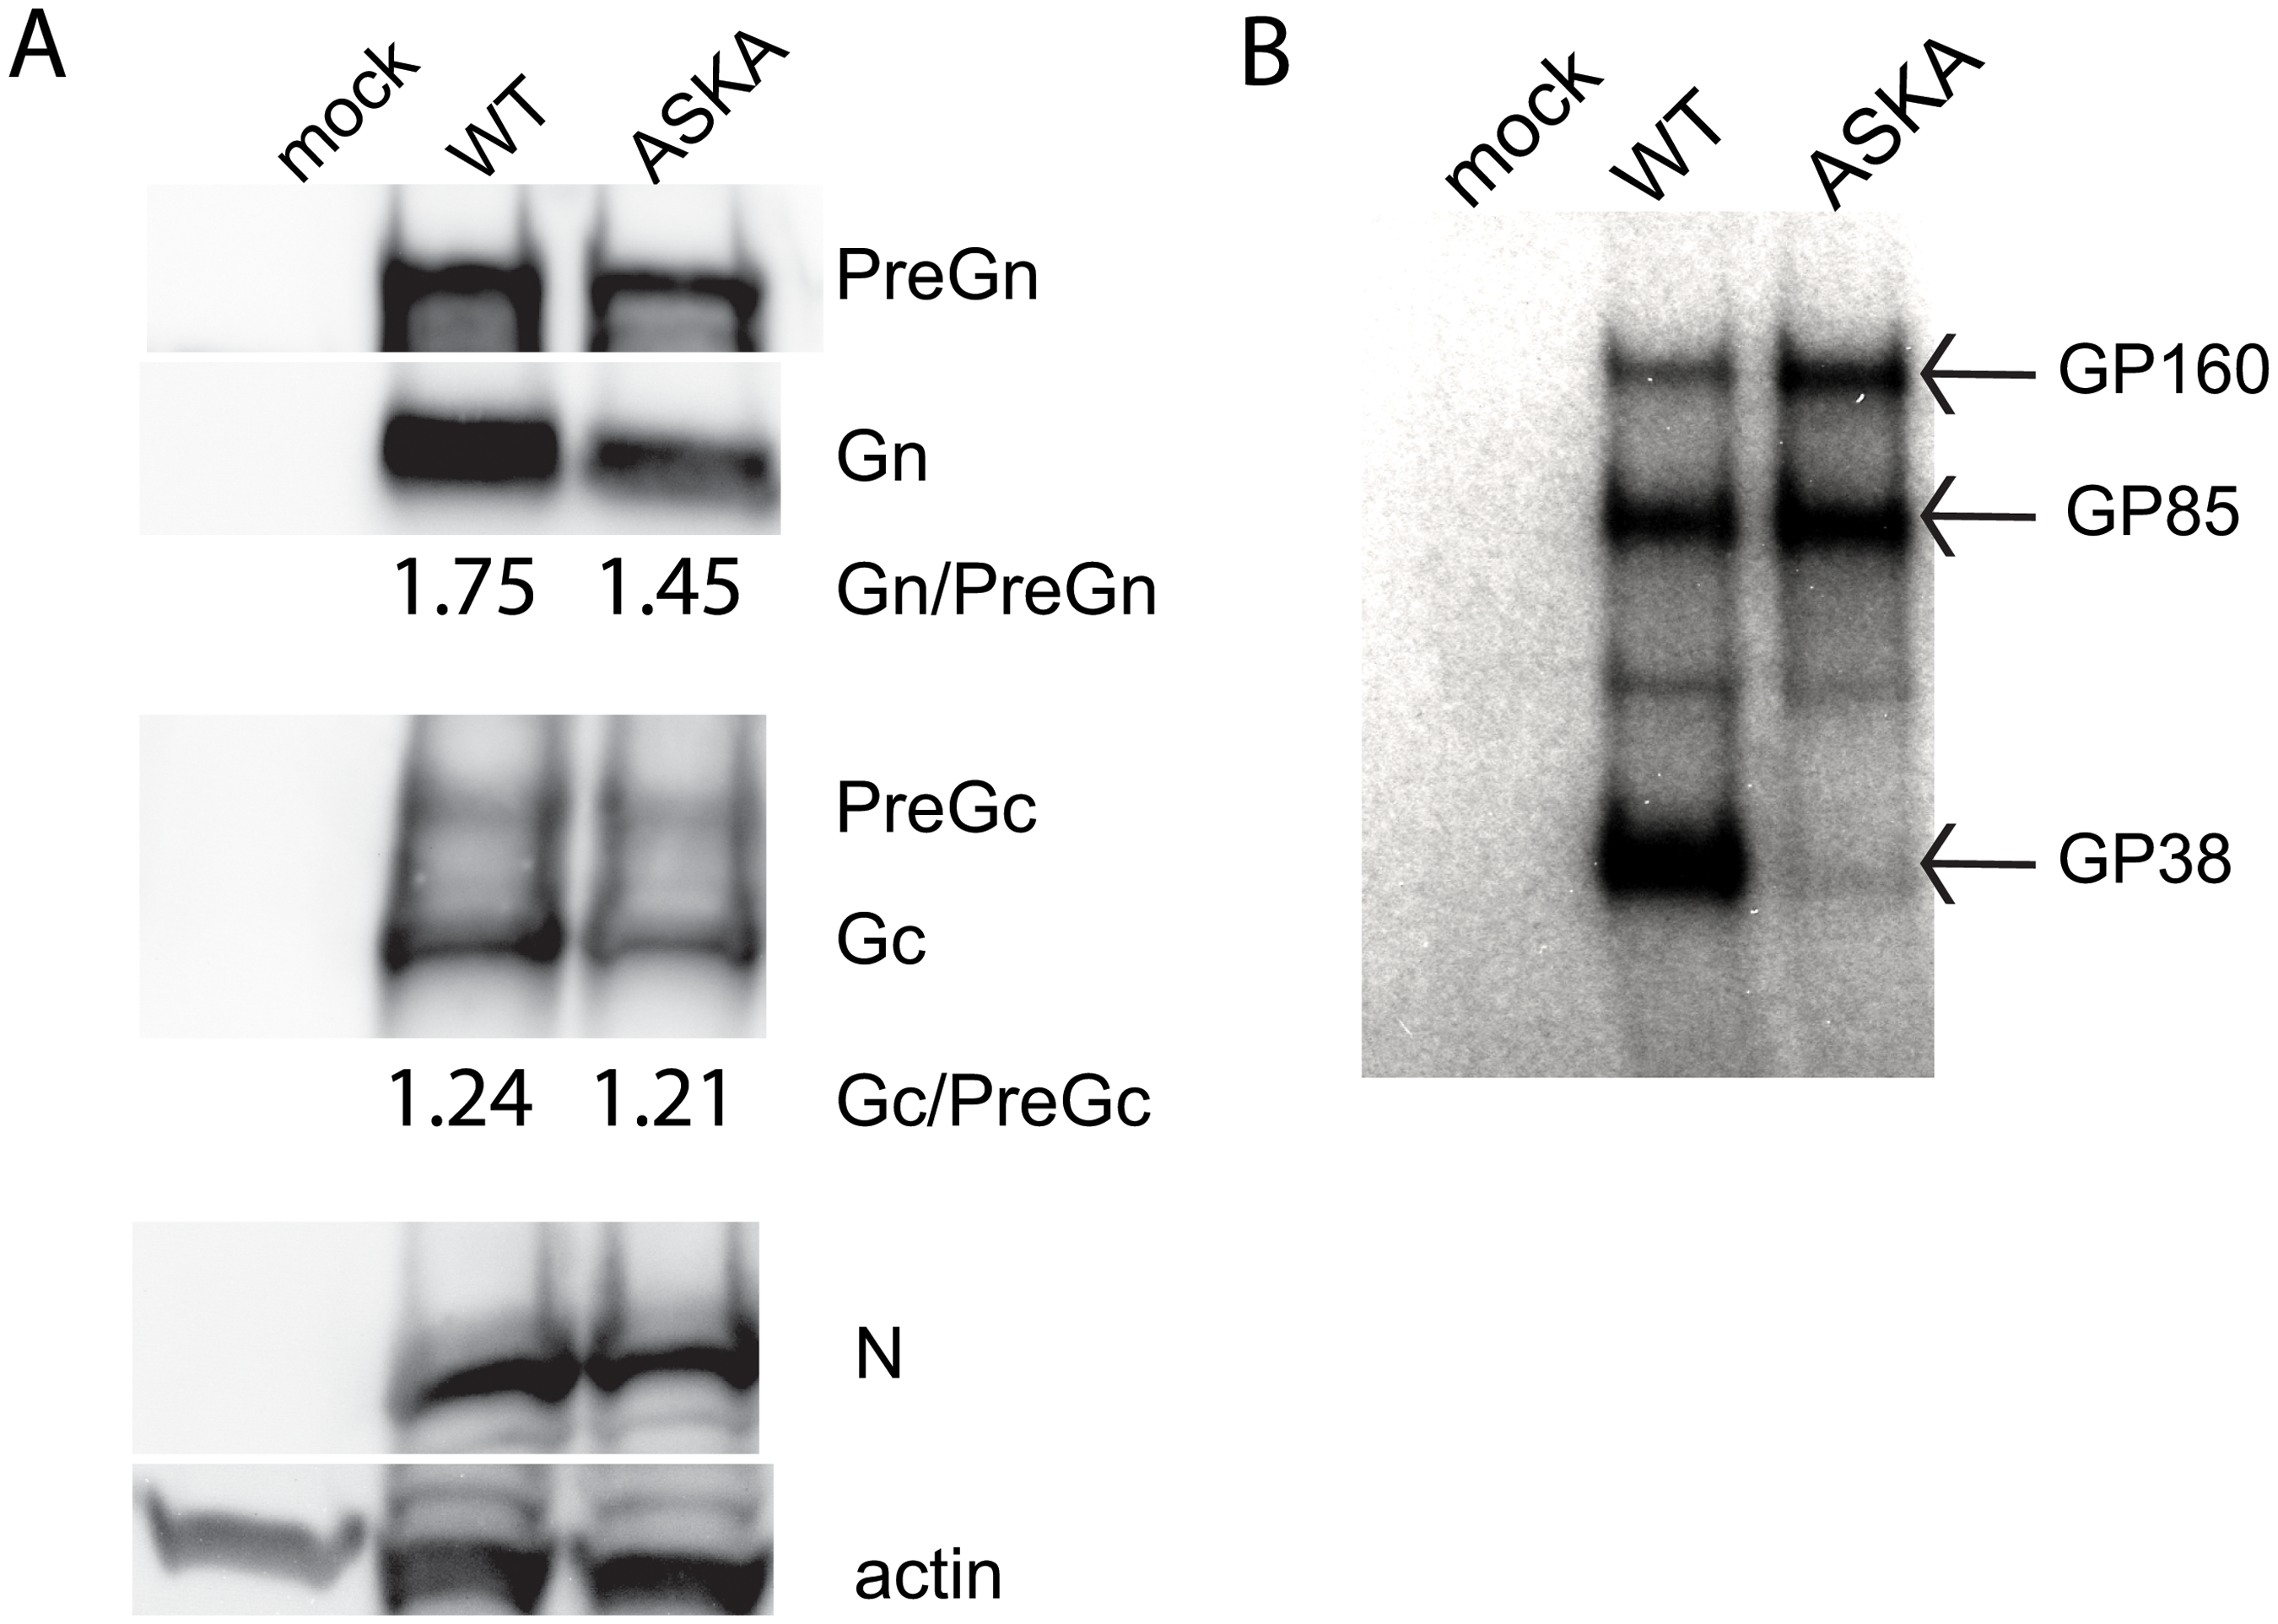 Effects of blocking furin cleavage on CCHFV glycoprotein maturation.